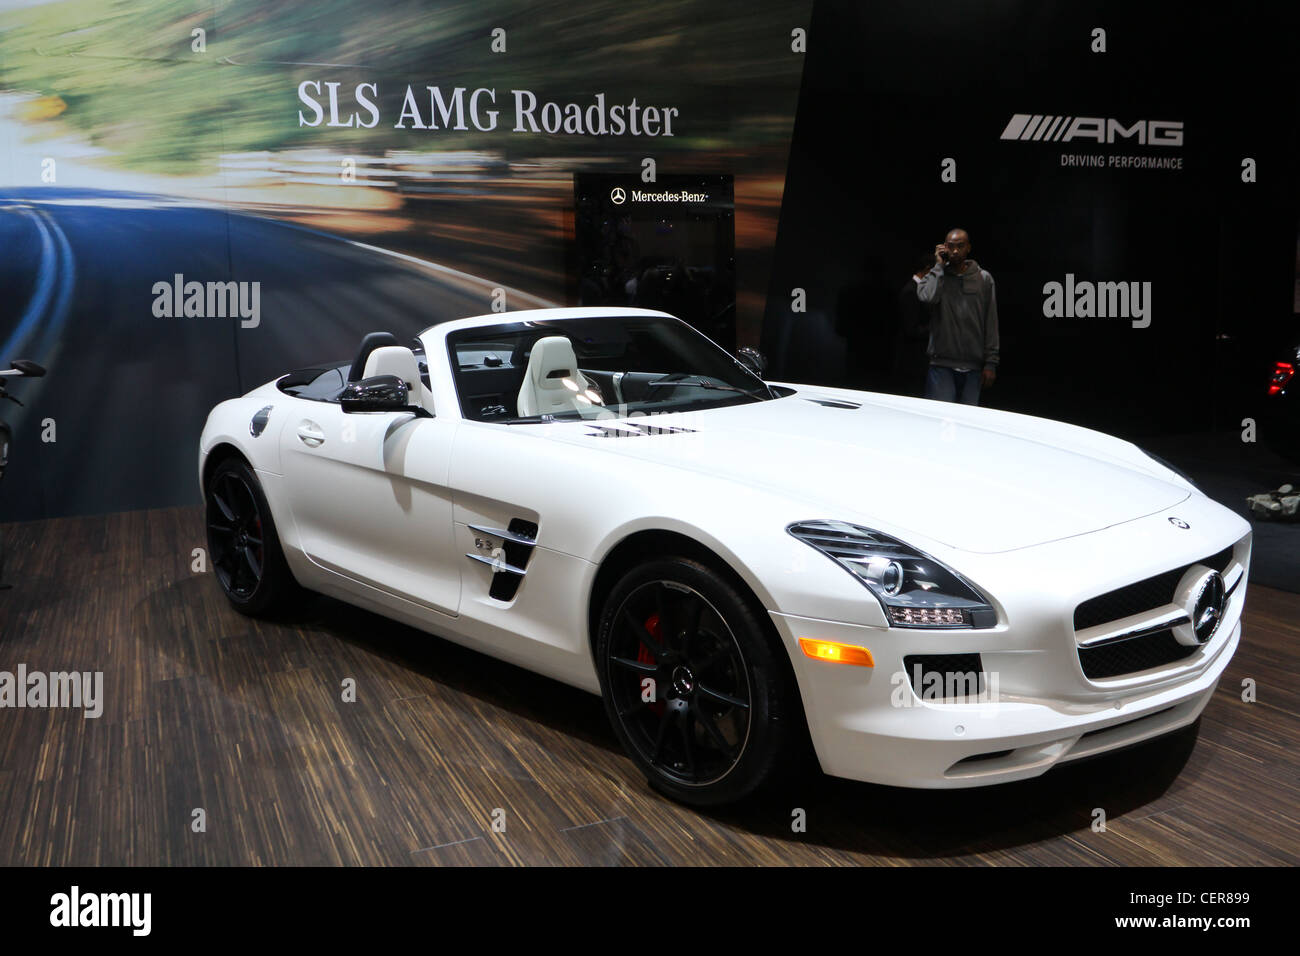 White convertible car mercedes benz sls amg roadster stock photo white convertible car mercedes benz sls amg roadster publicscrutiny